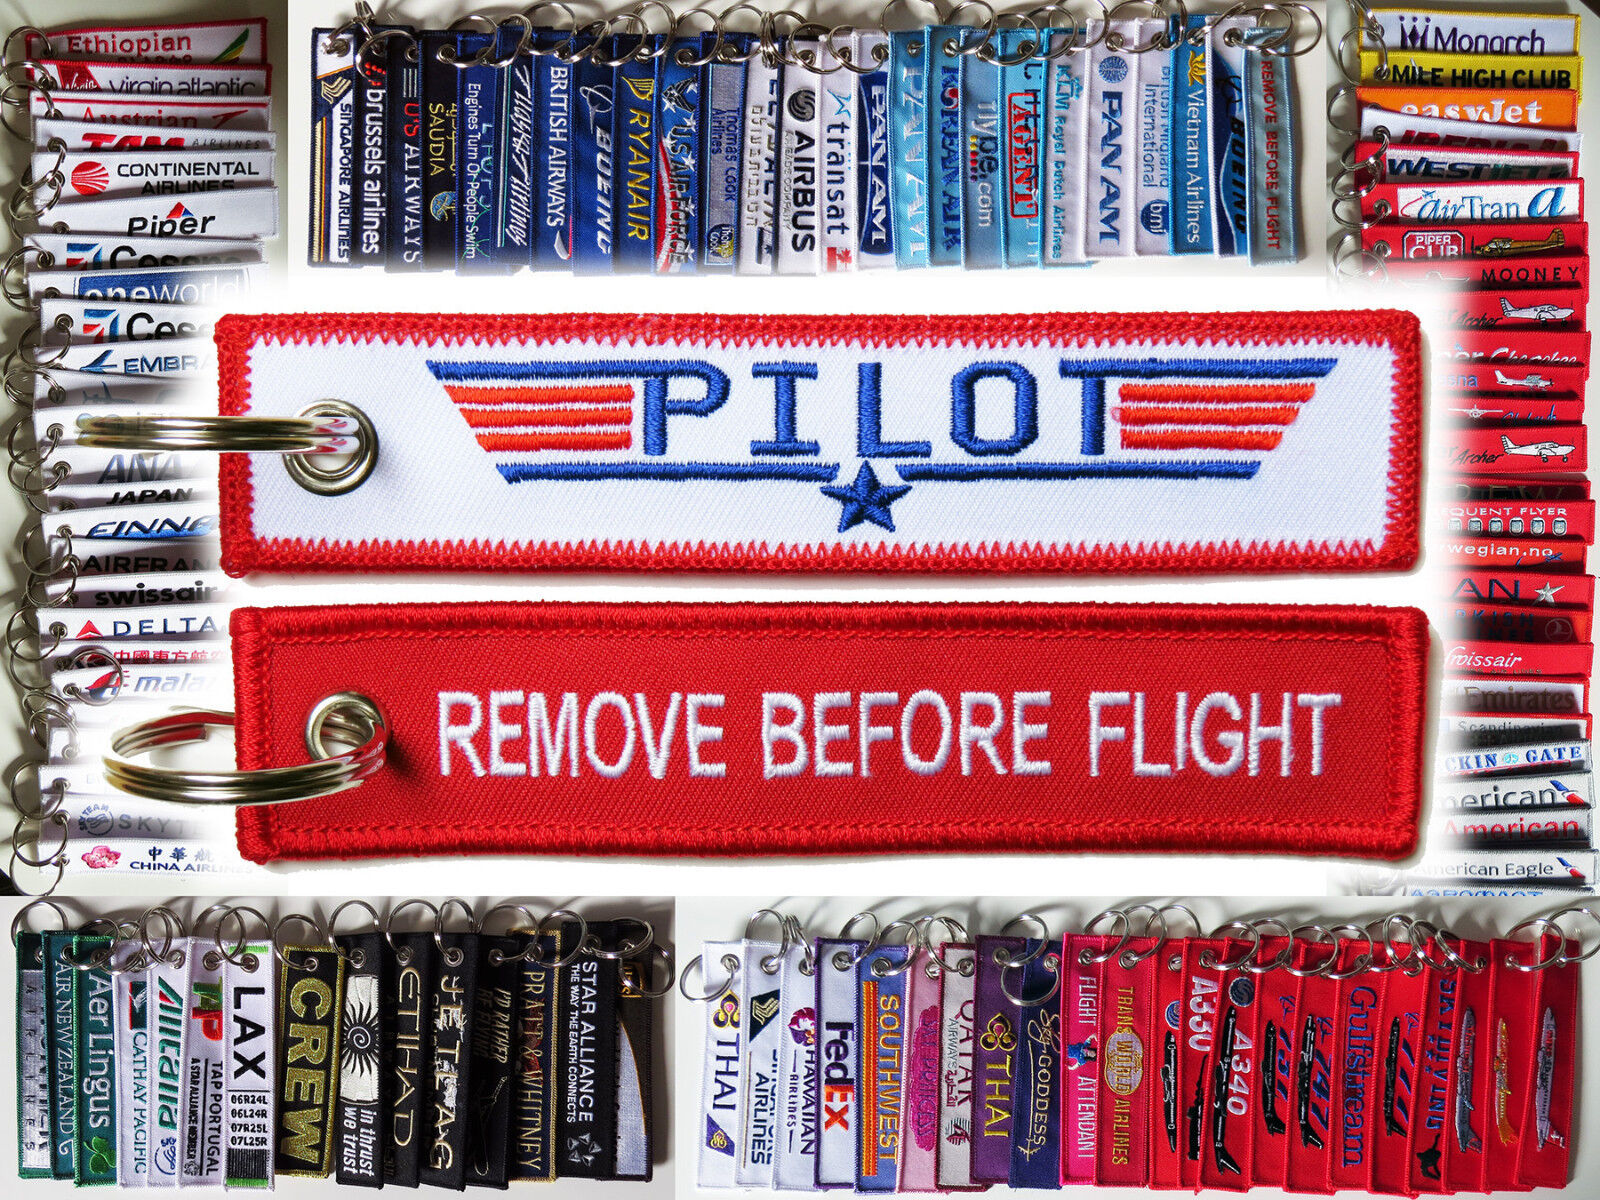 Details about Keyring TOP GUN PILOT Remove Before Flight tag keychain  military fighter jet 110e73936